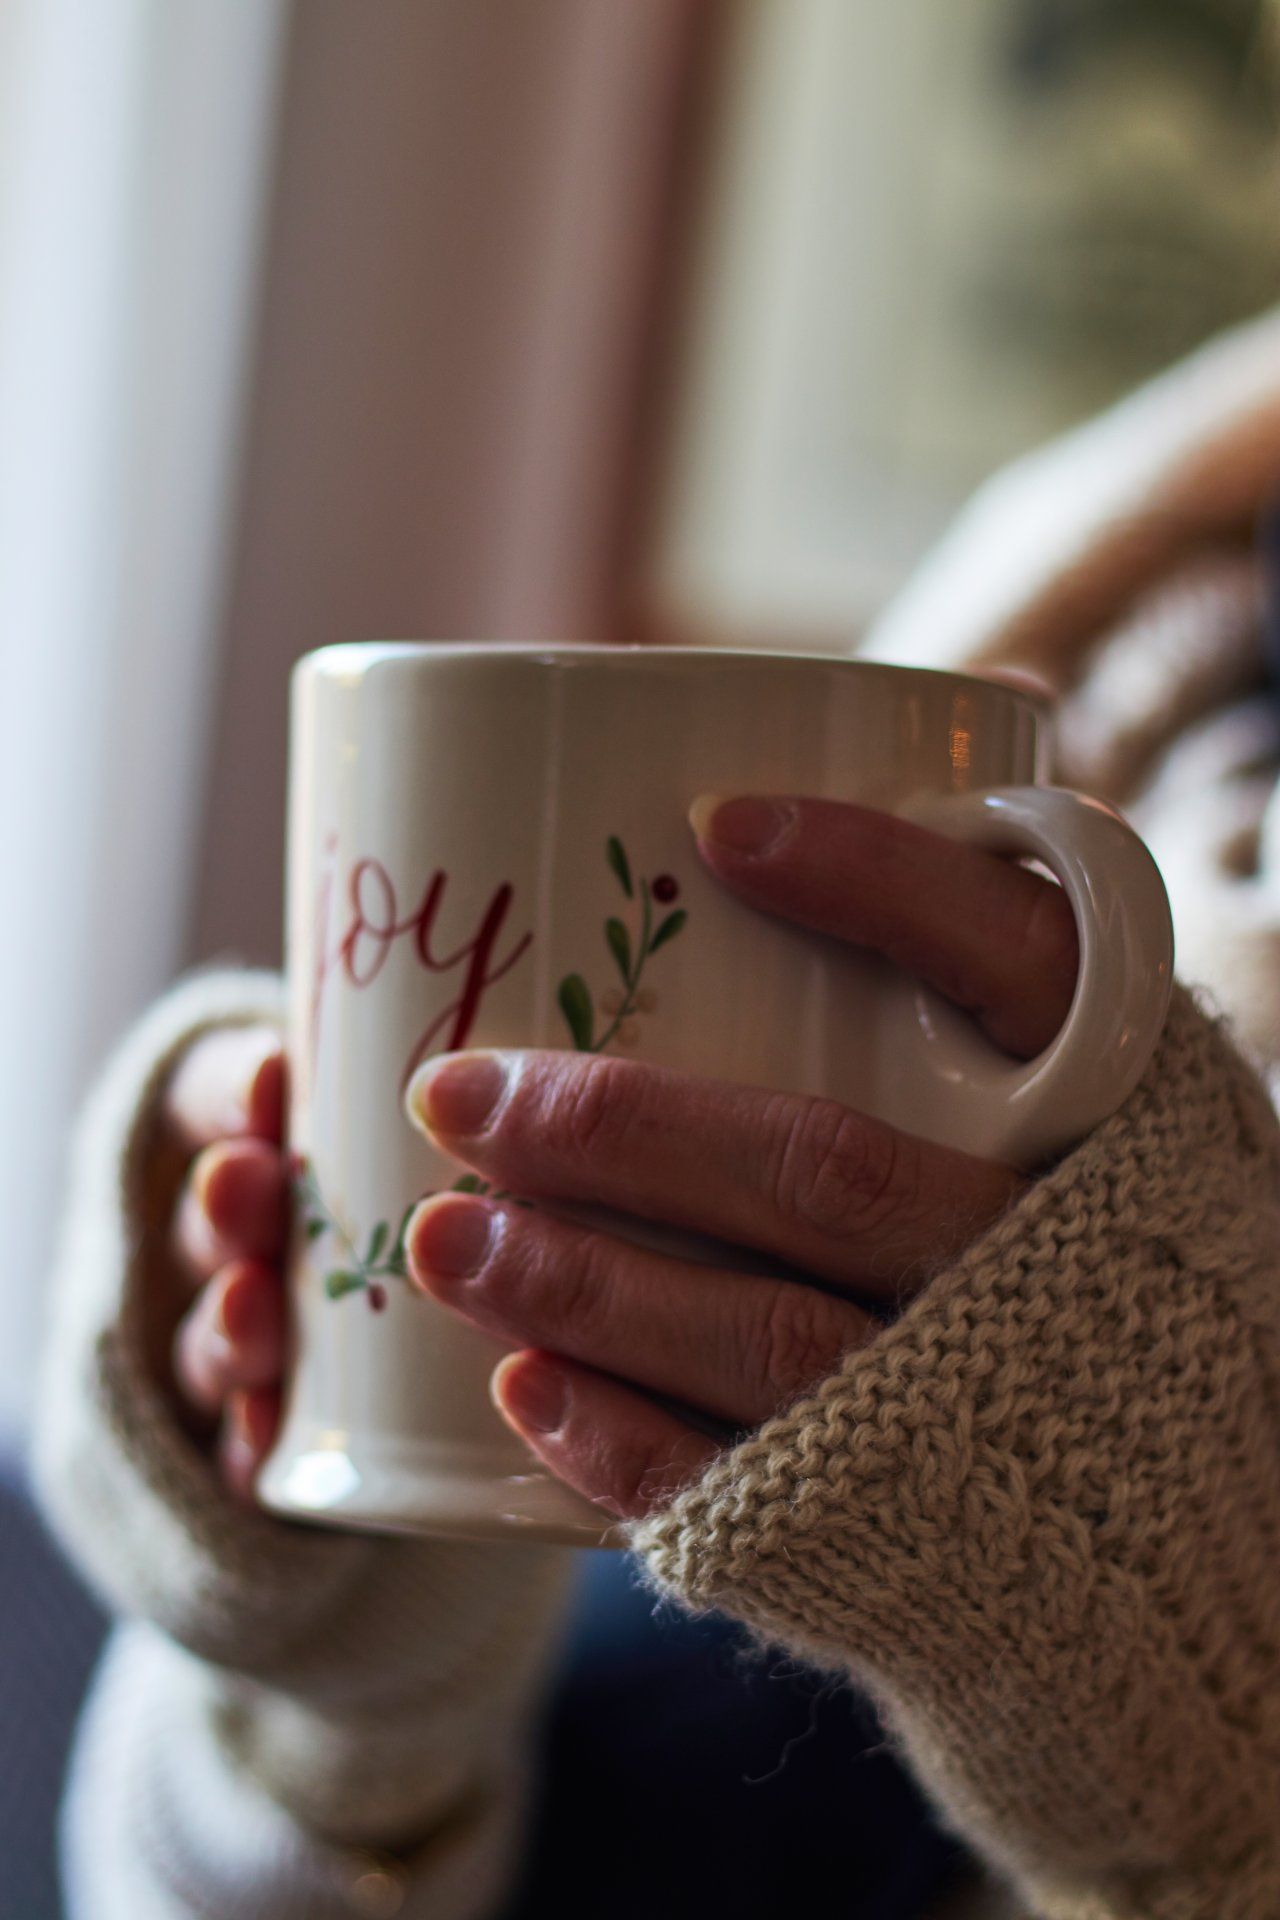 Cozy-est products on the internet